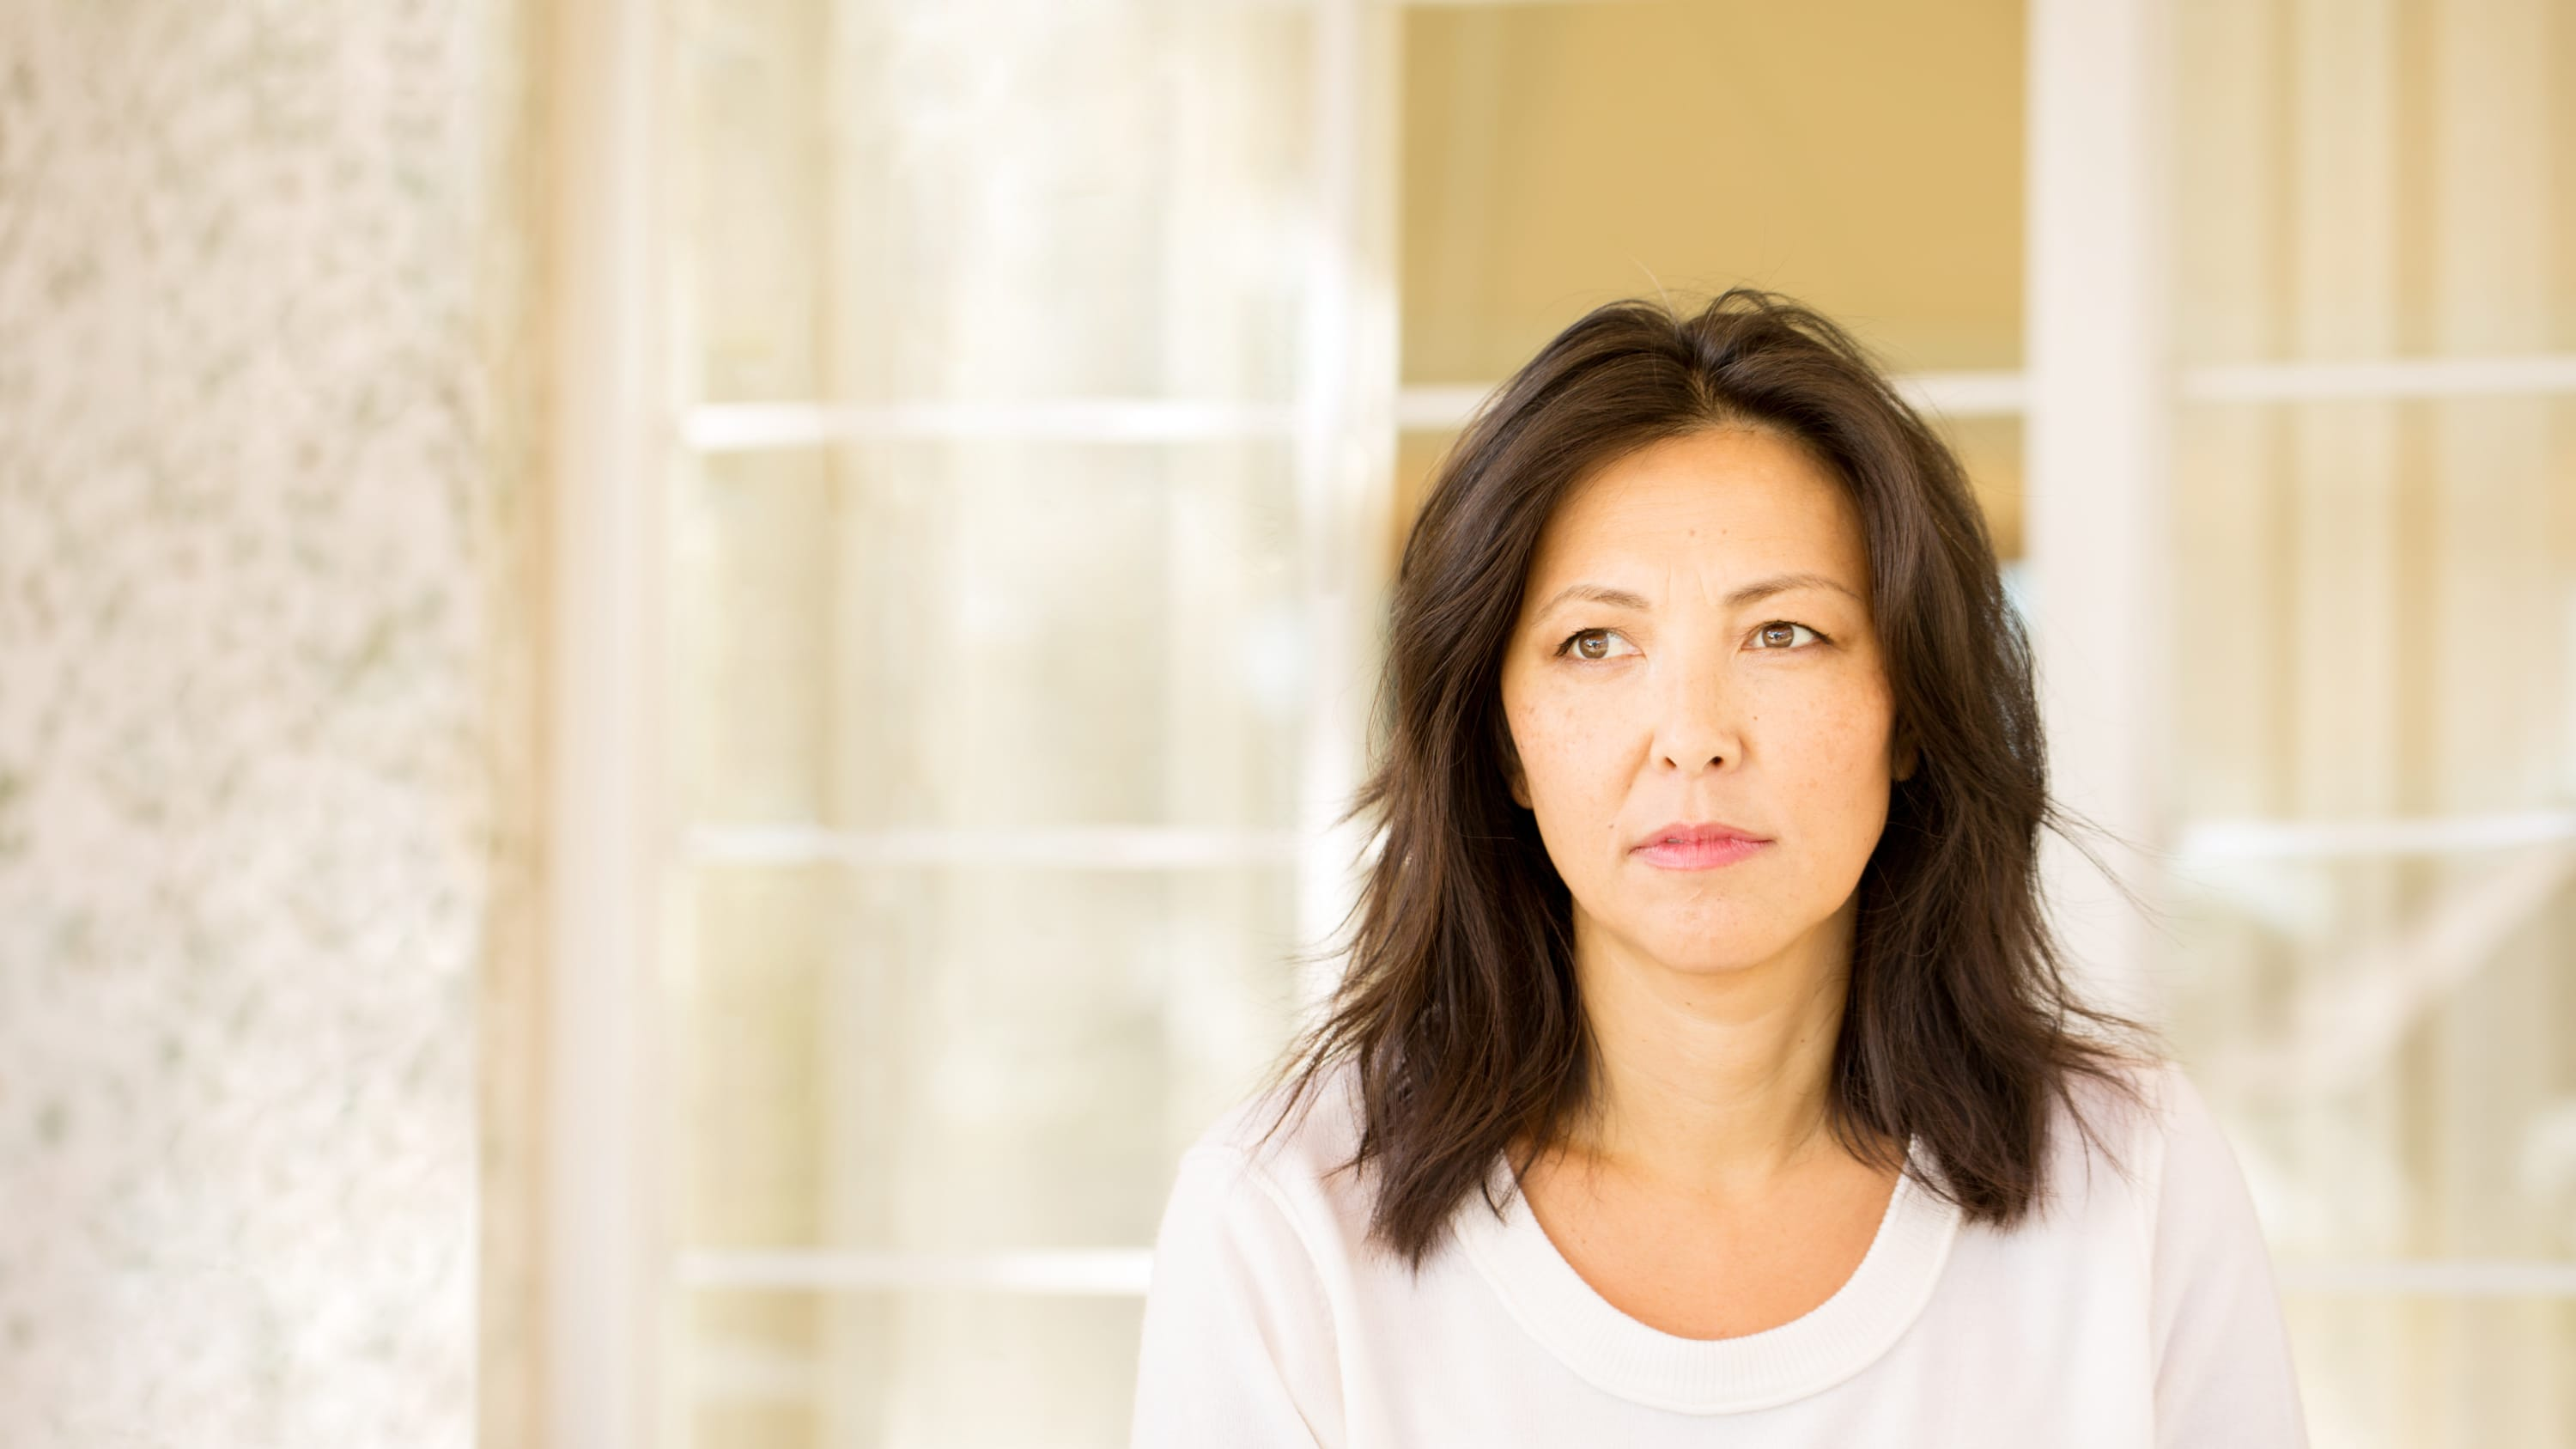 portrait of a woman looking pensive, possibly as a result of receiving a diagnosis of leukemia